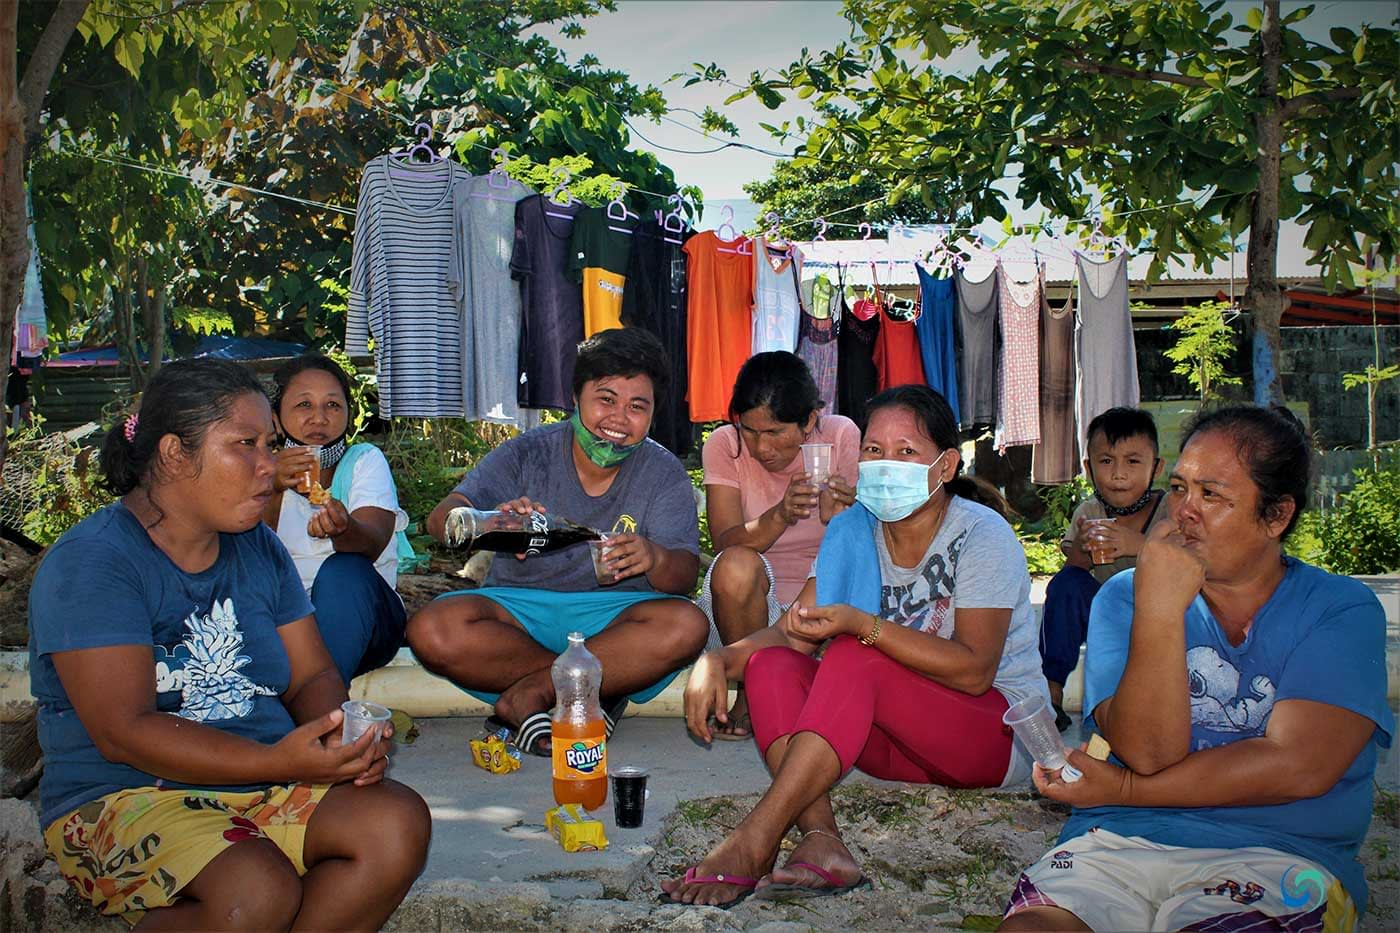 The local communities of Malapascua have adapted well to the changes brought by the pandemic